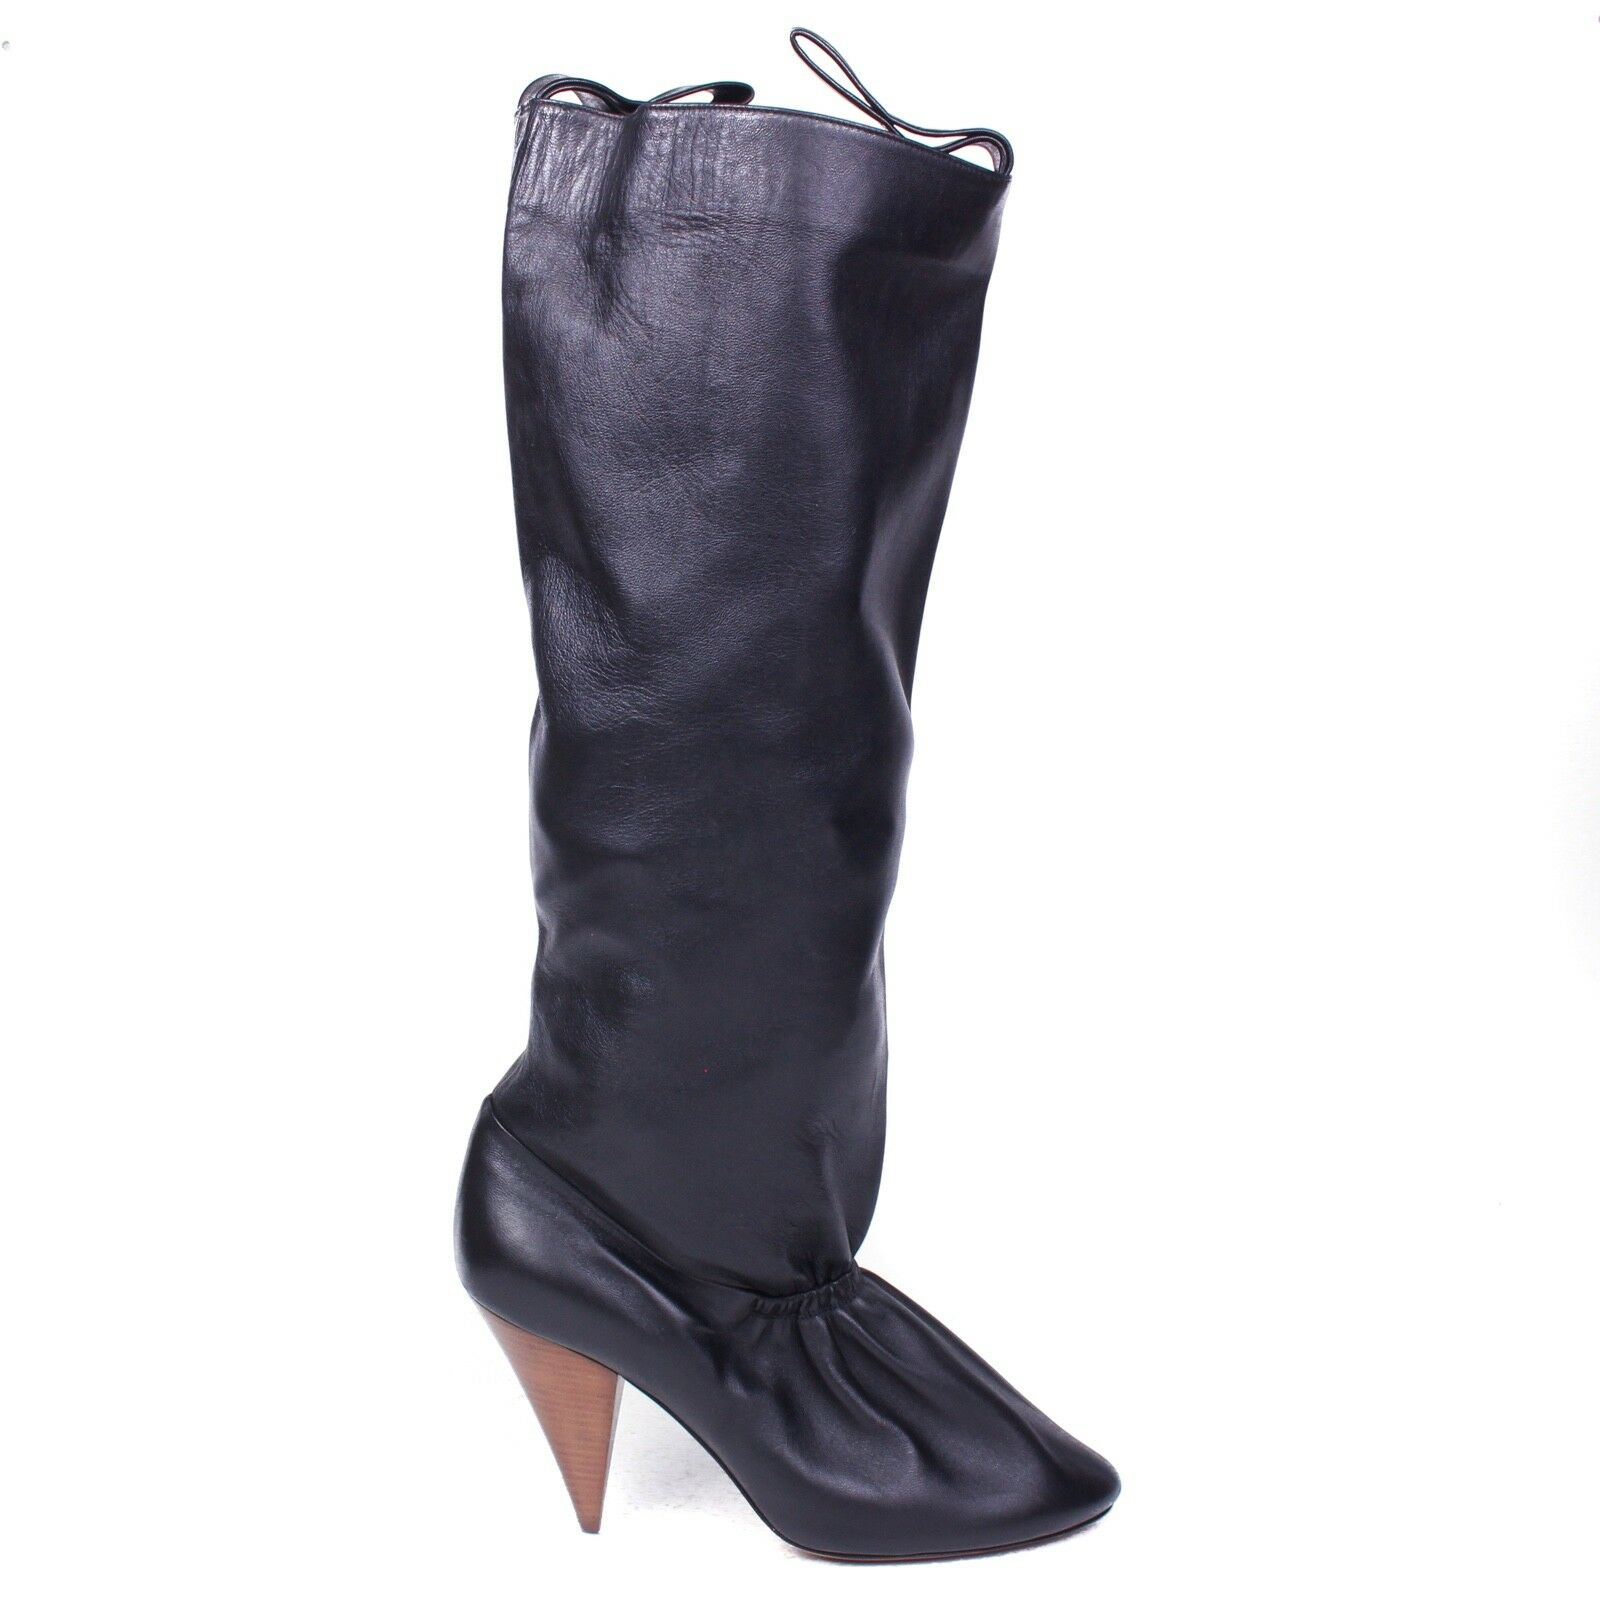 Celine 2018 New  1800 Tall Boots Black Leather with Wooden Heels - US 8 - 38